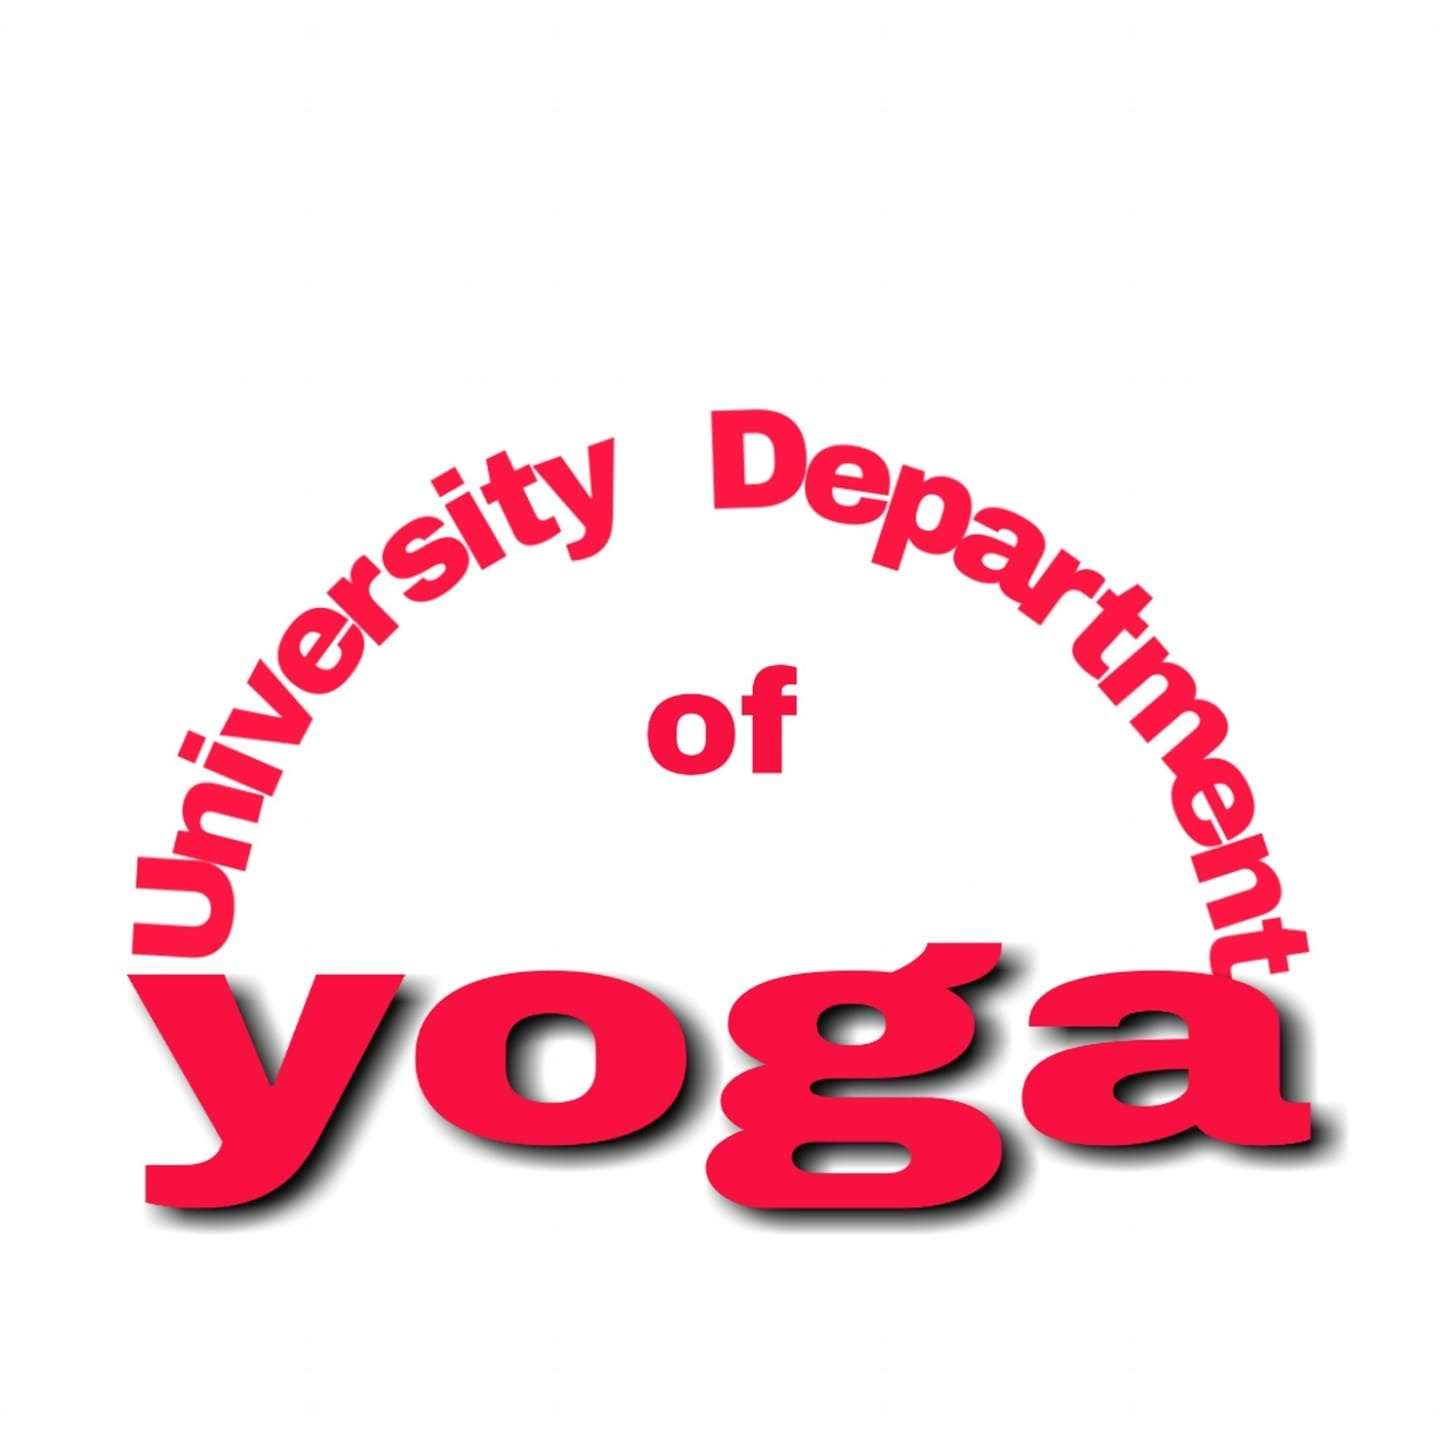 University Department of Yoga - Ranchi University Image